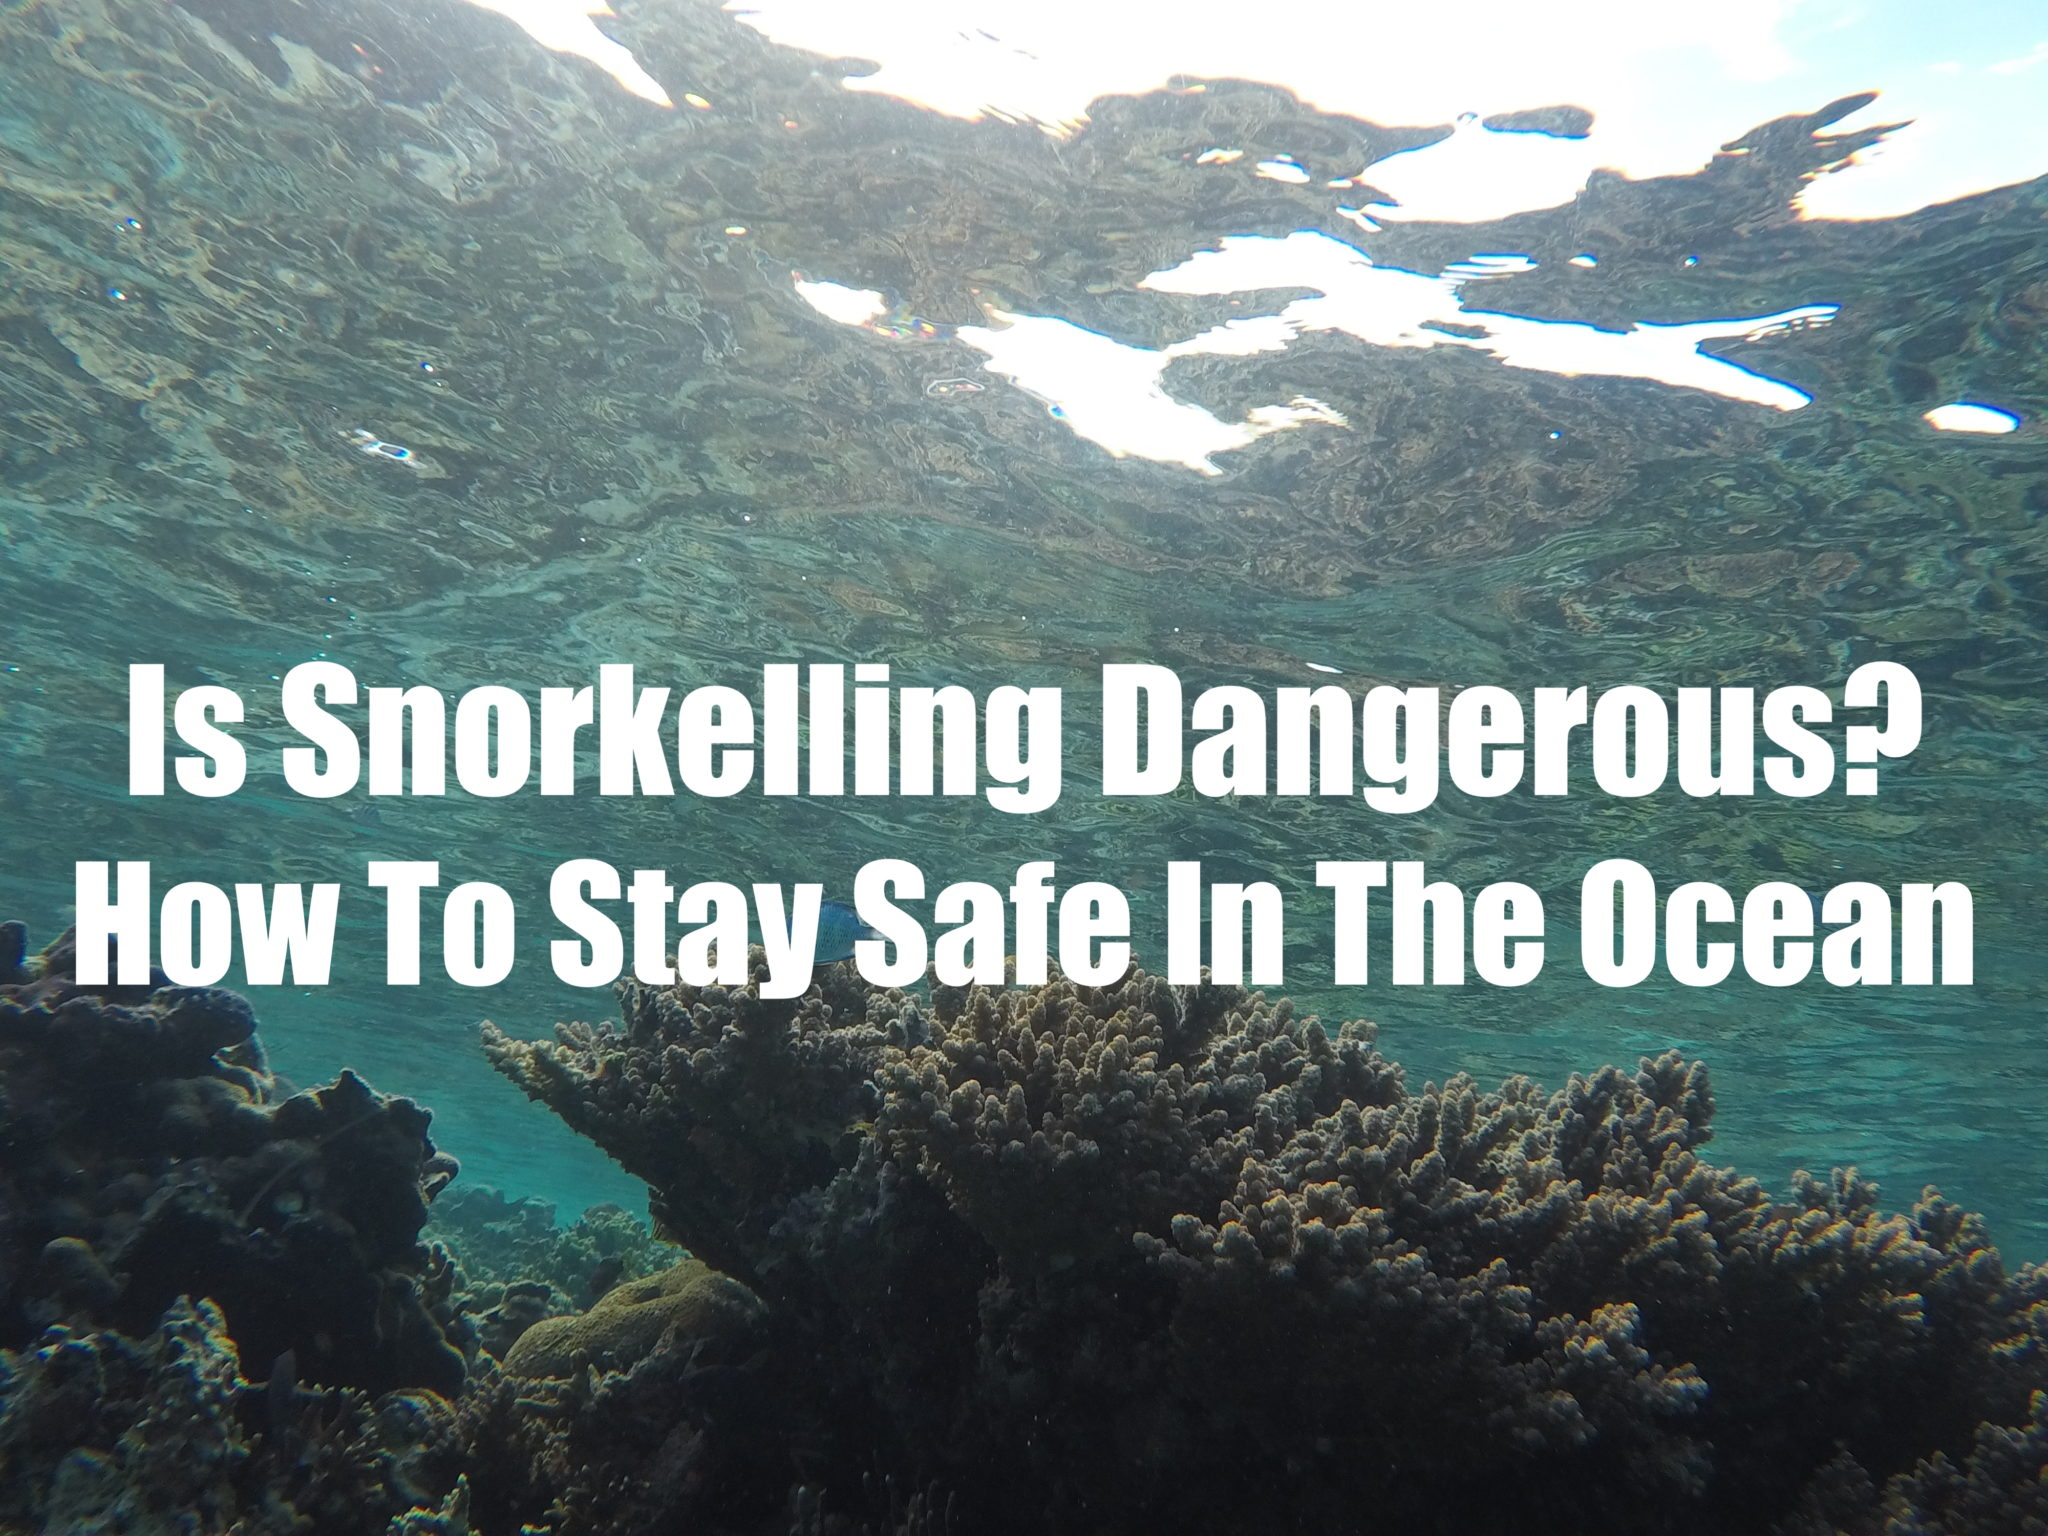 Is Snorkelling Dangerous? How to stay safe in the ocean